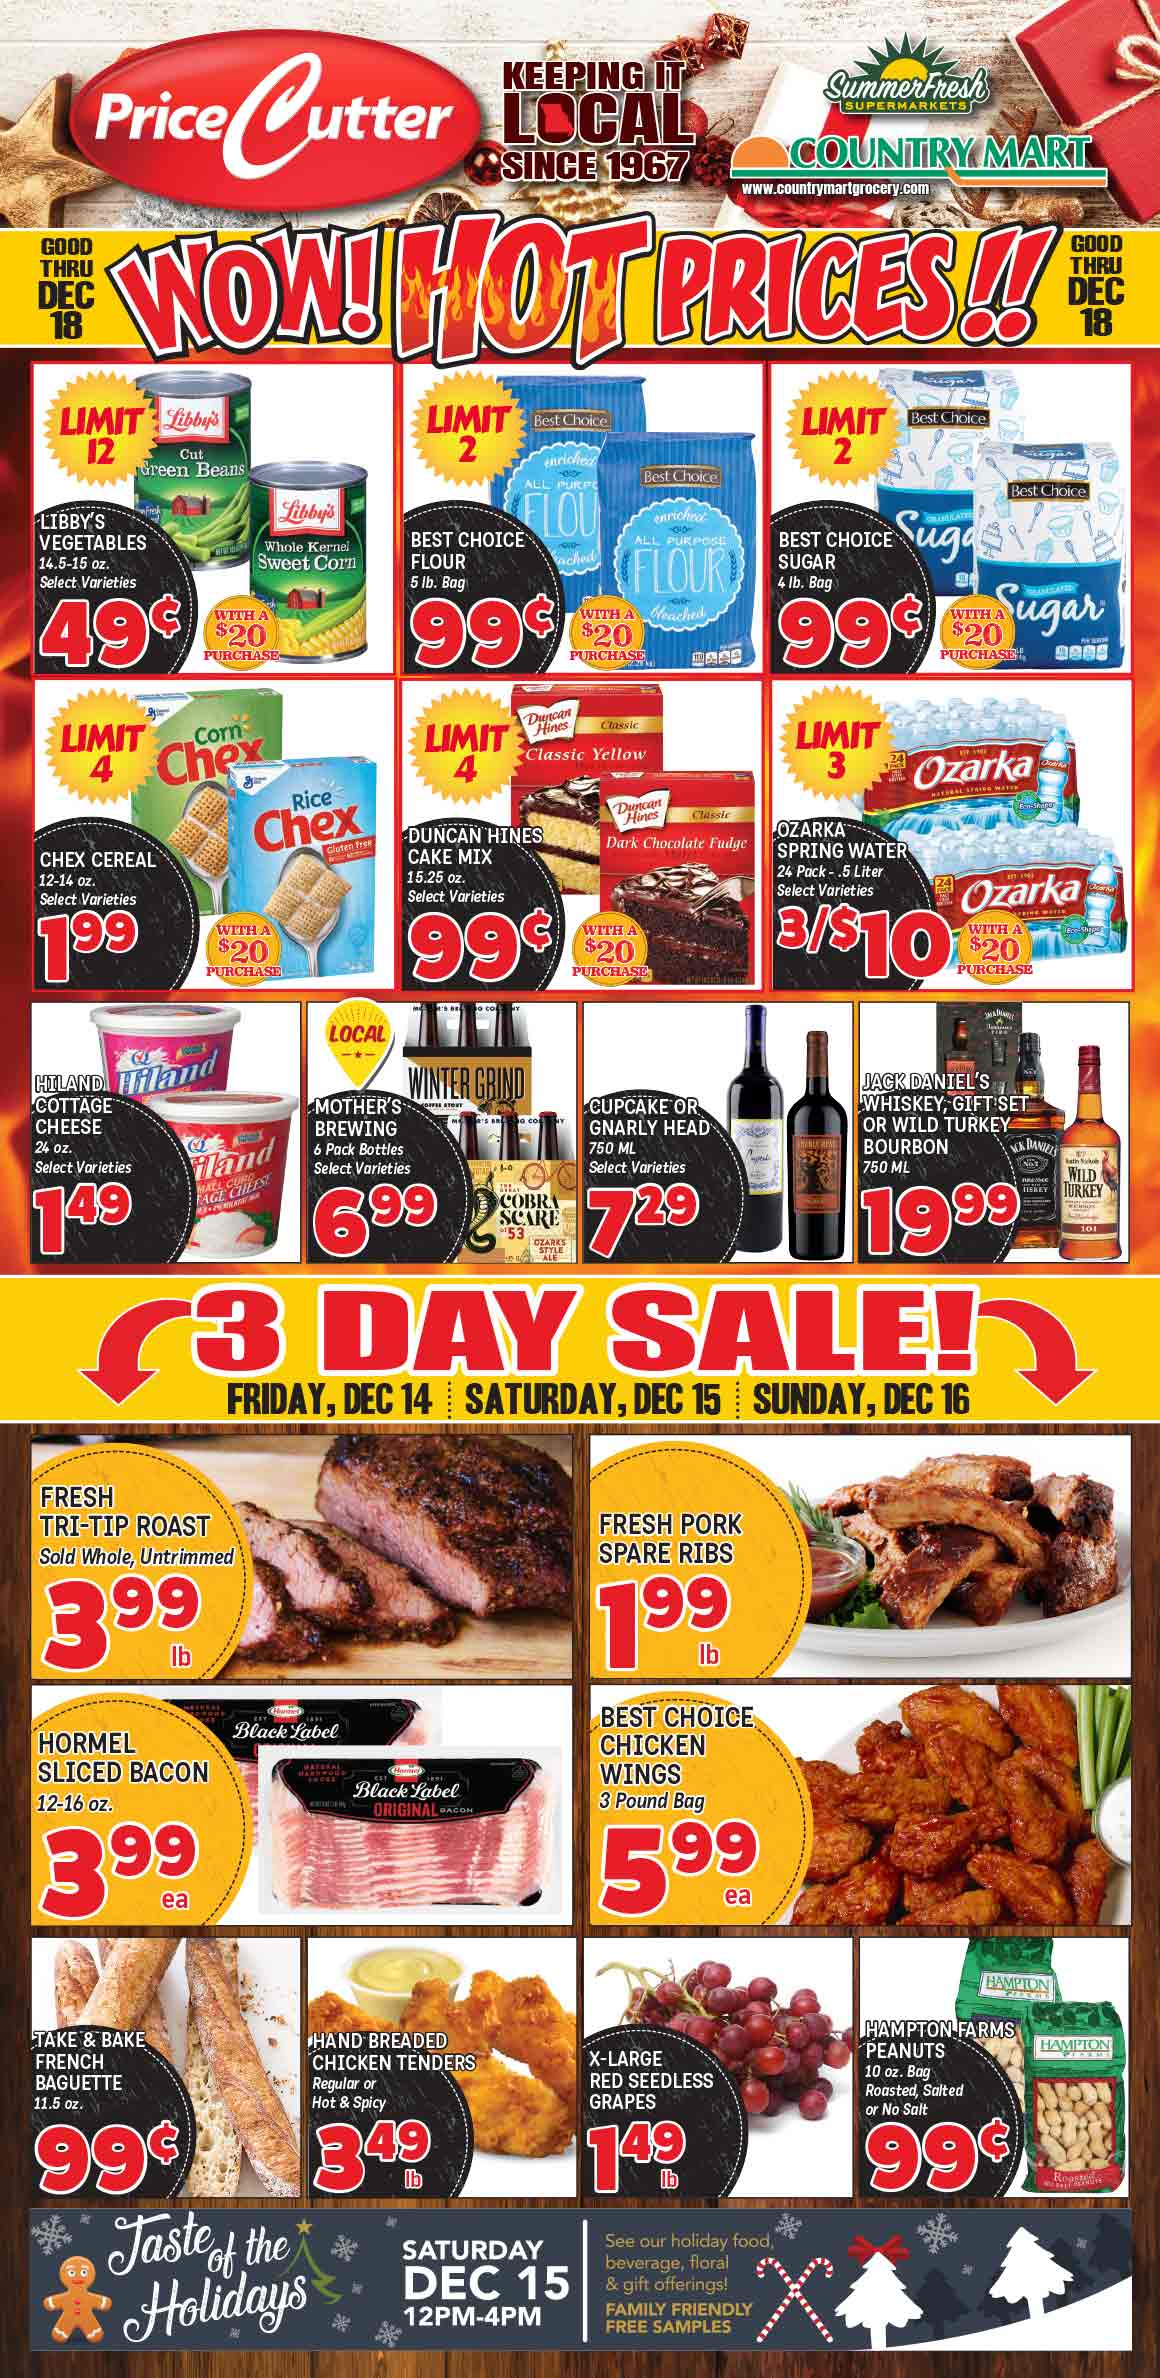 Hot Prices & 3 Day Sale!